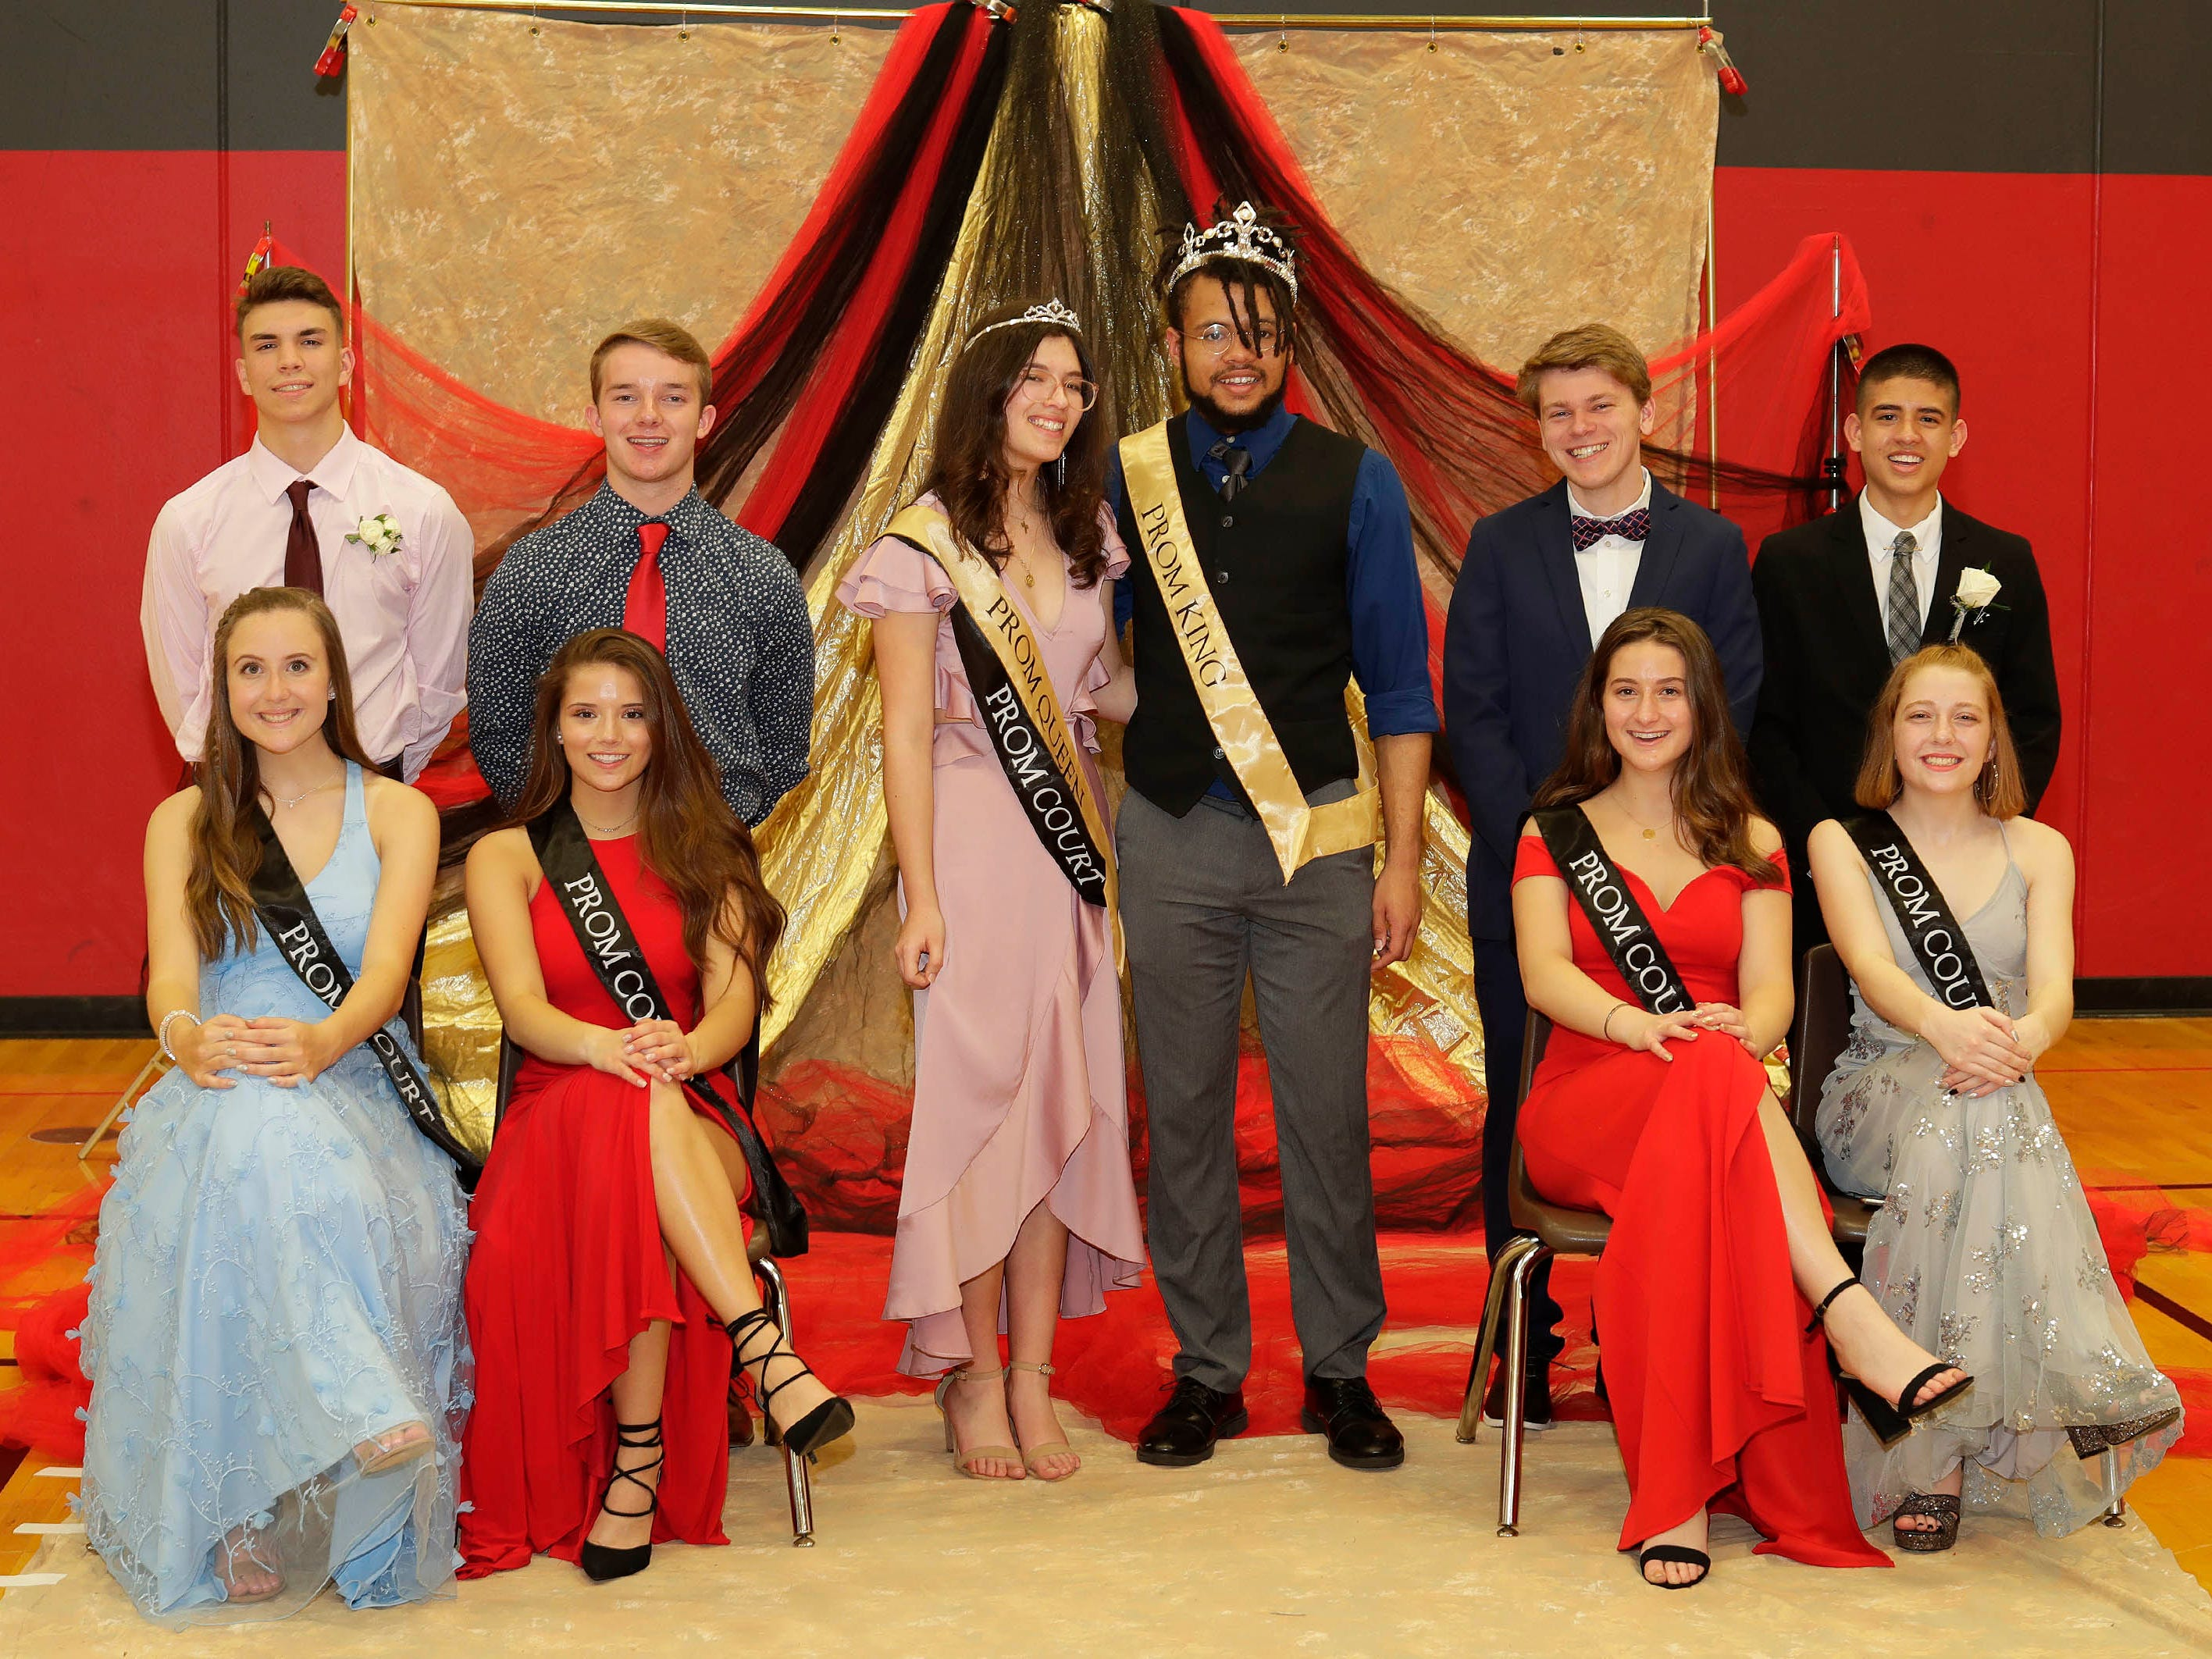 The 2019 prom court poses for a portrait Sheboygan South Prom, Saturday, Mary 4, 2019, in Sheboygan, Wis.